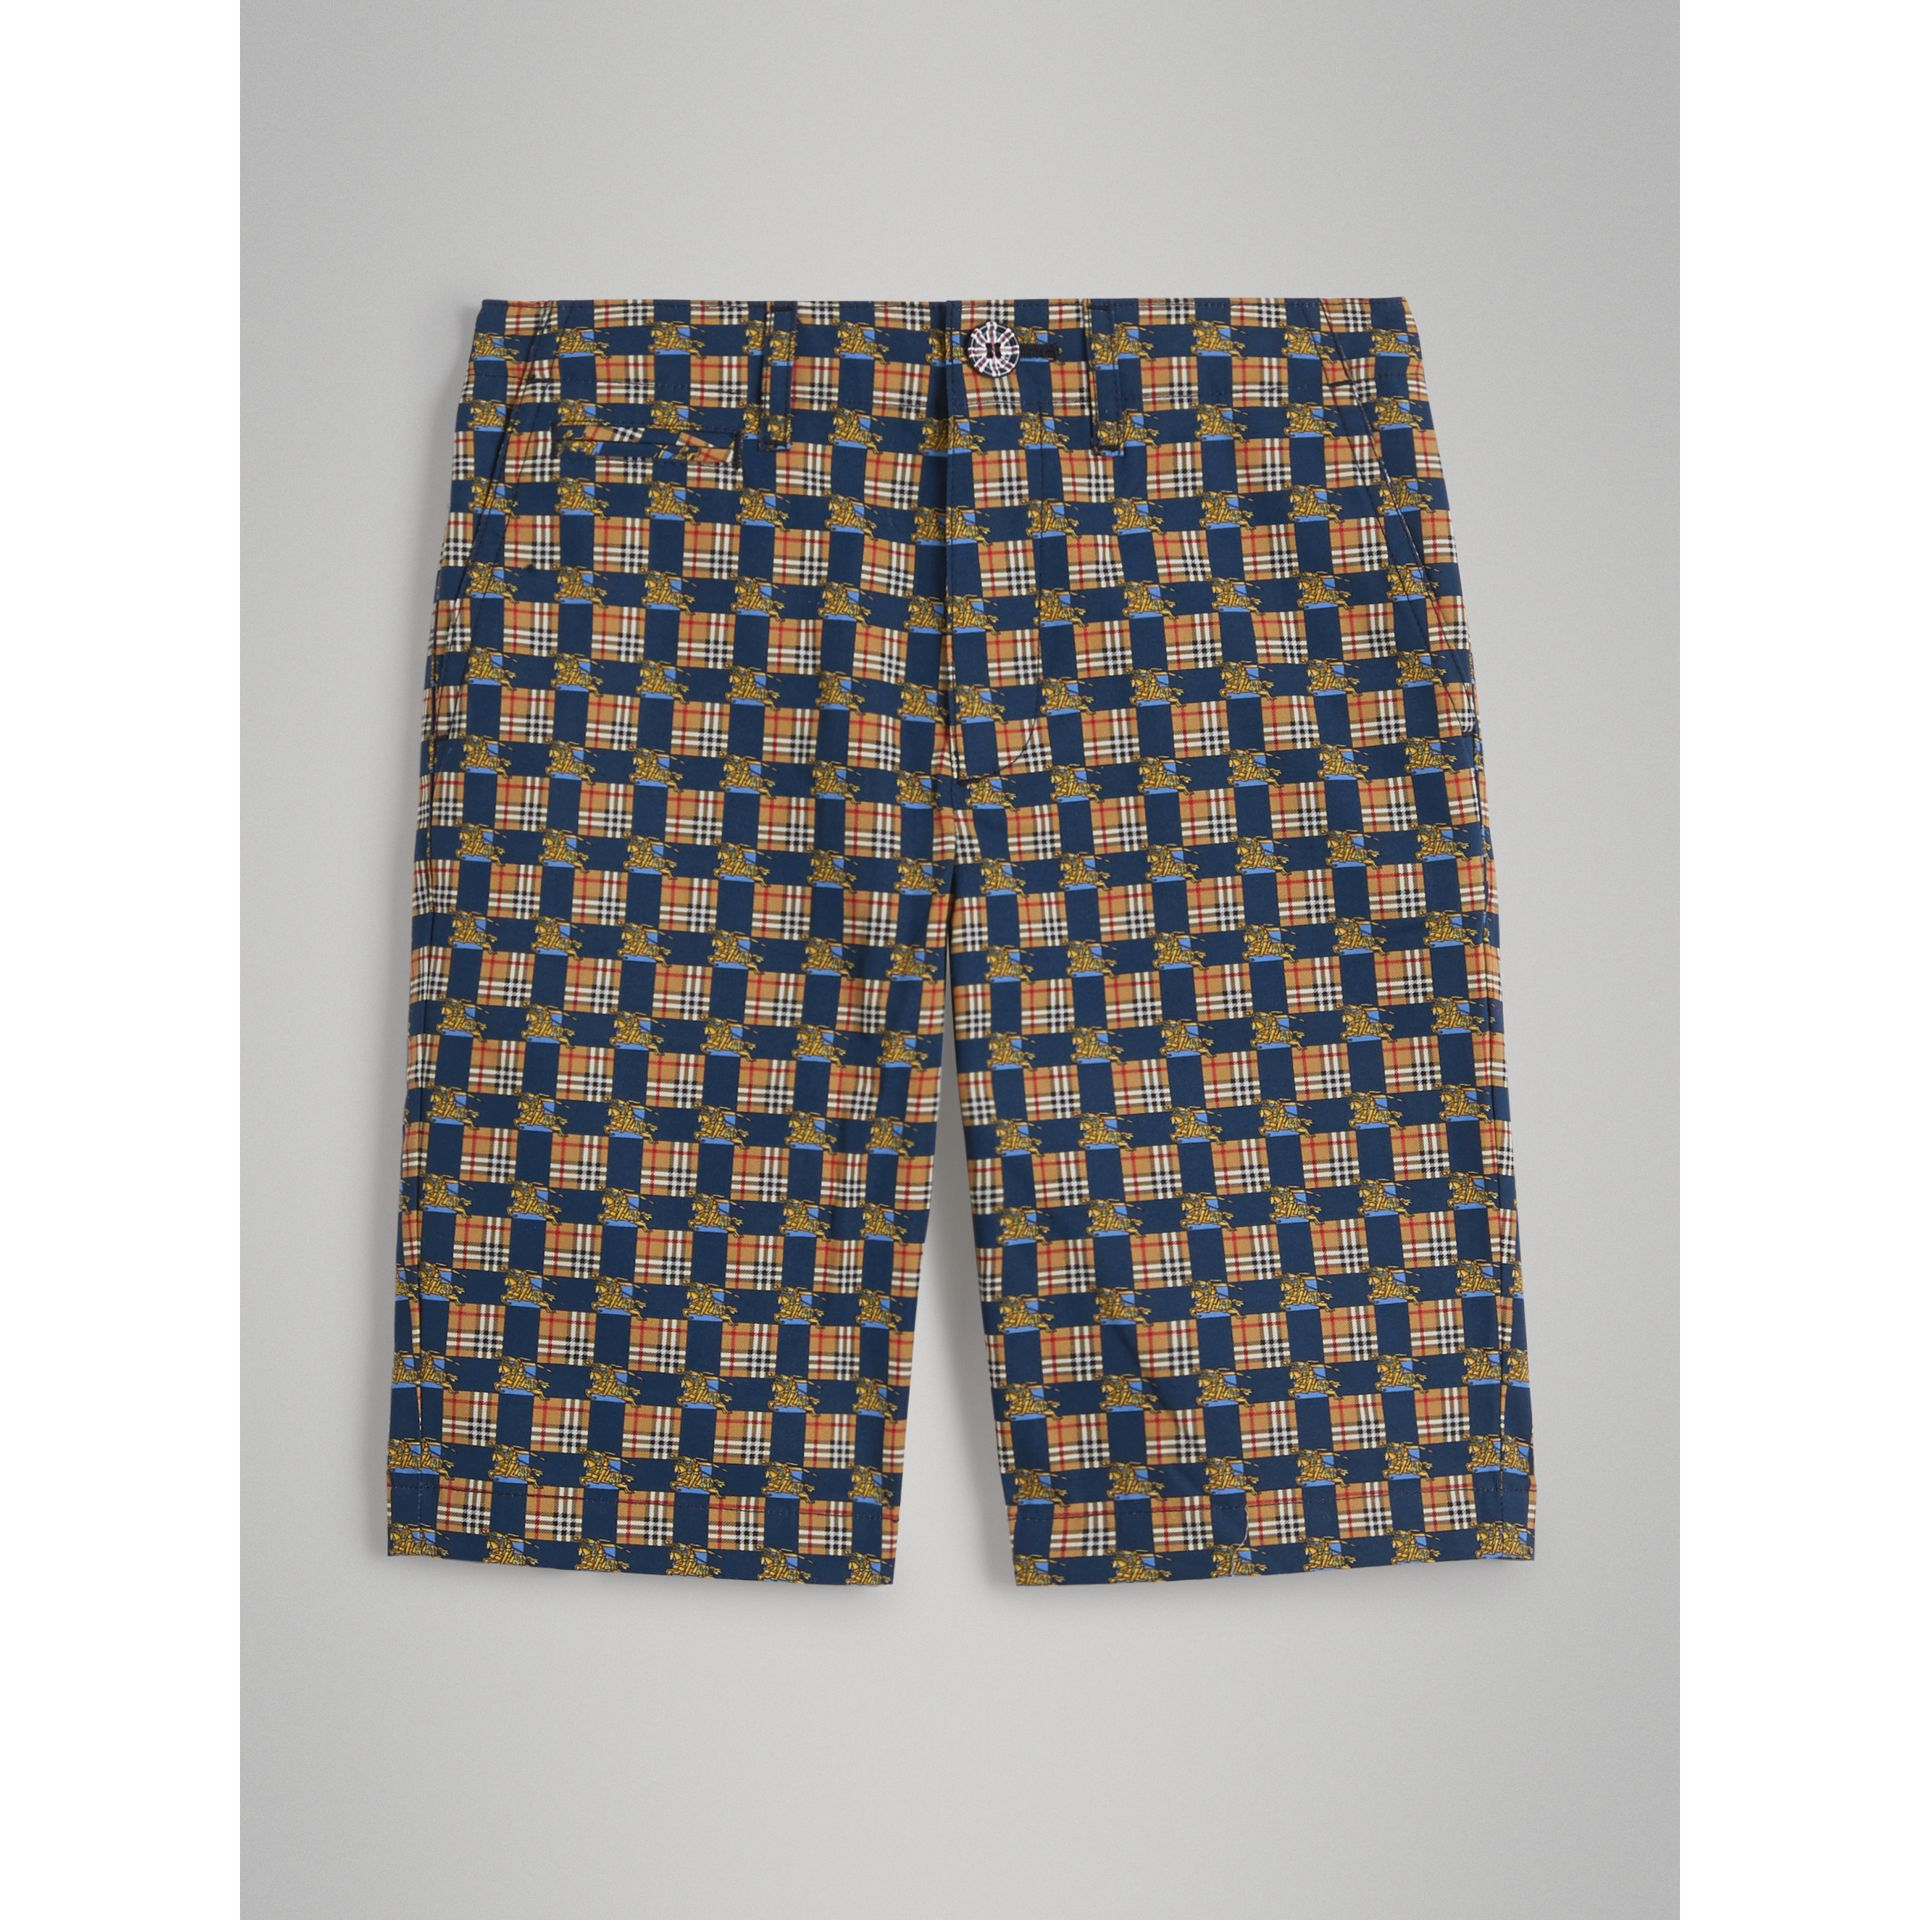 Tiled Archive Print Cotton Shorts in Navy | Burberry - gallery image 0